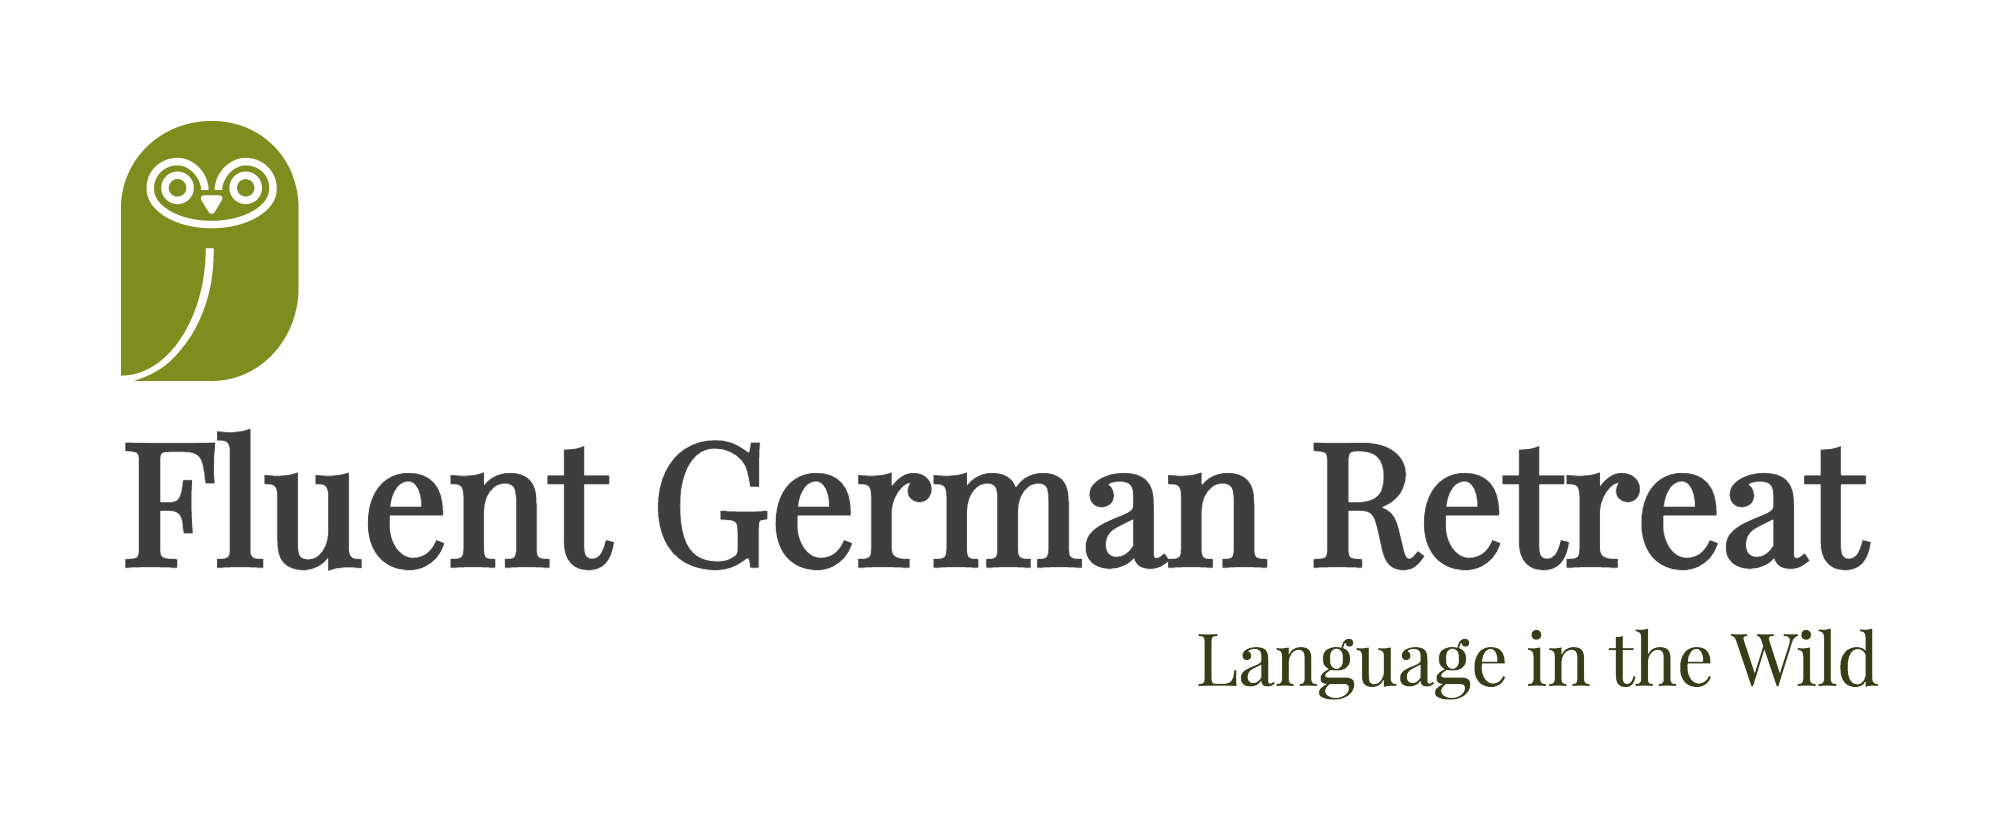 Fluent German Retreat-logo (1).png